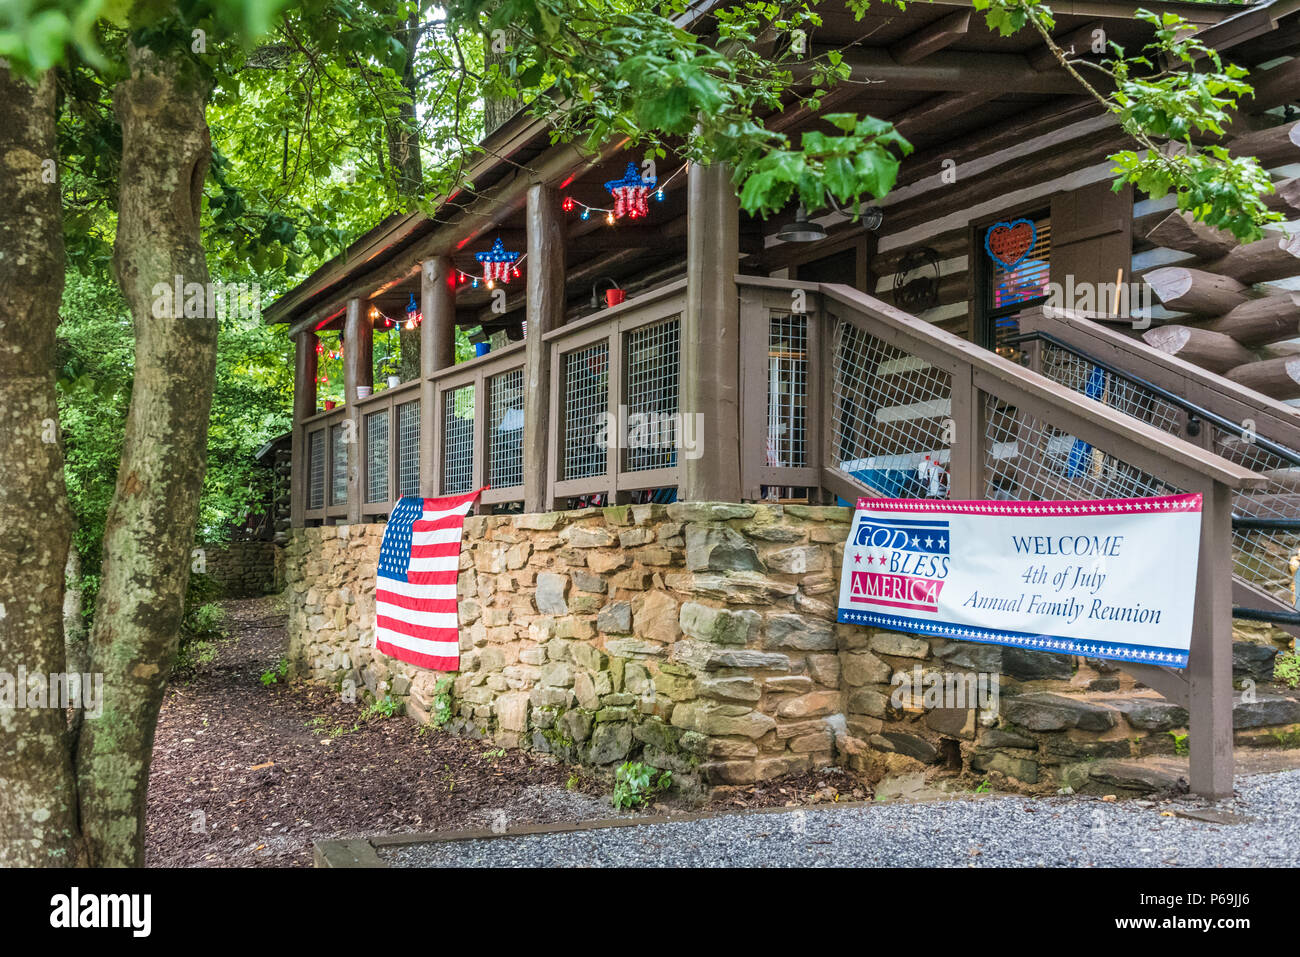 Mountain log cabin decorated for a Fourth of July family reunion at Vogel State Park in the Blue Ridge Mountains of North Georgia. (USA) - Stock Image